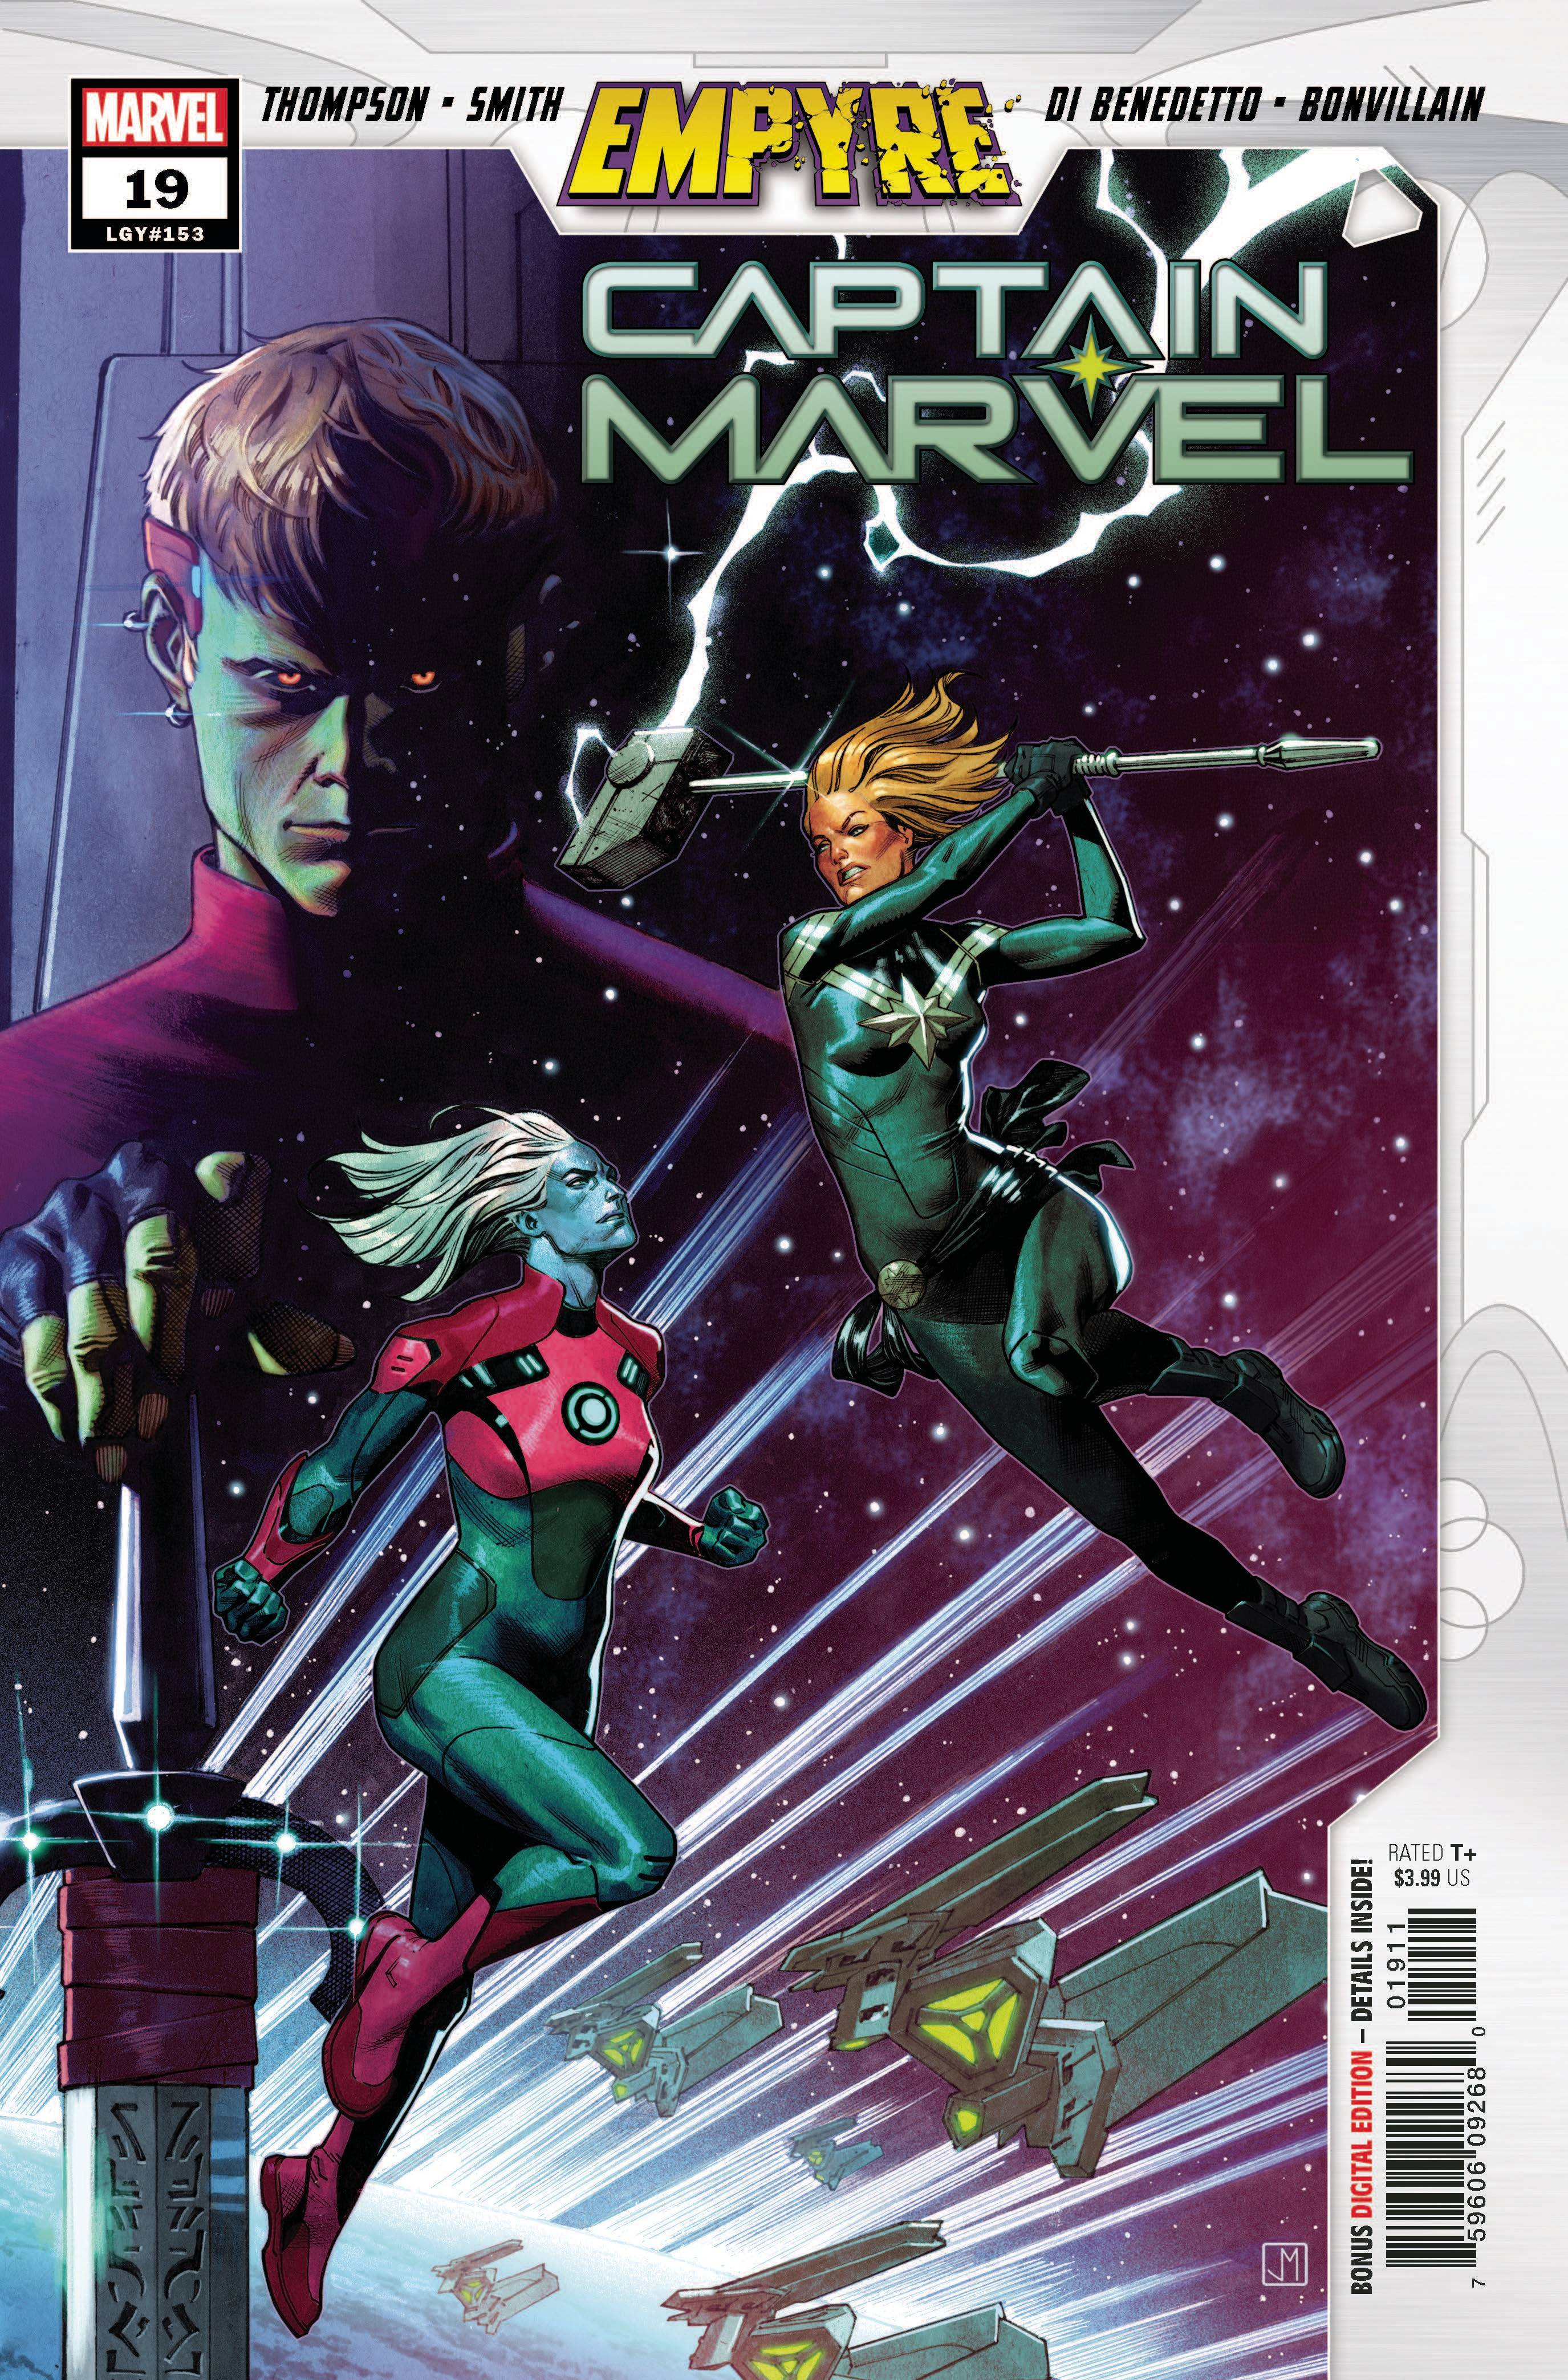 CAPTAIN MARVEL #19 EMP